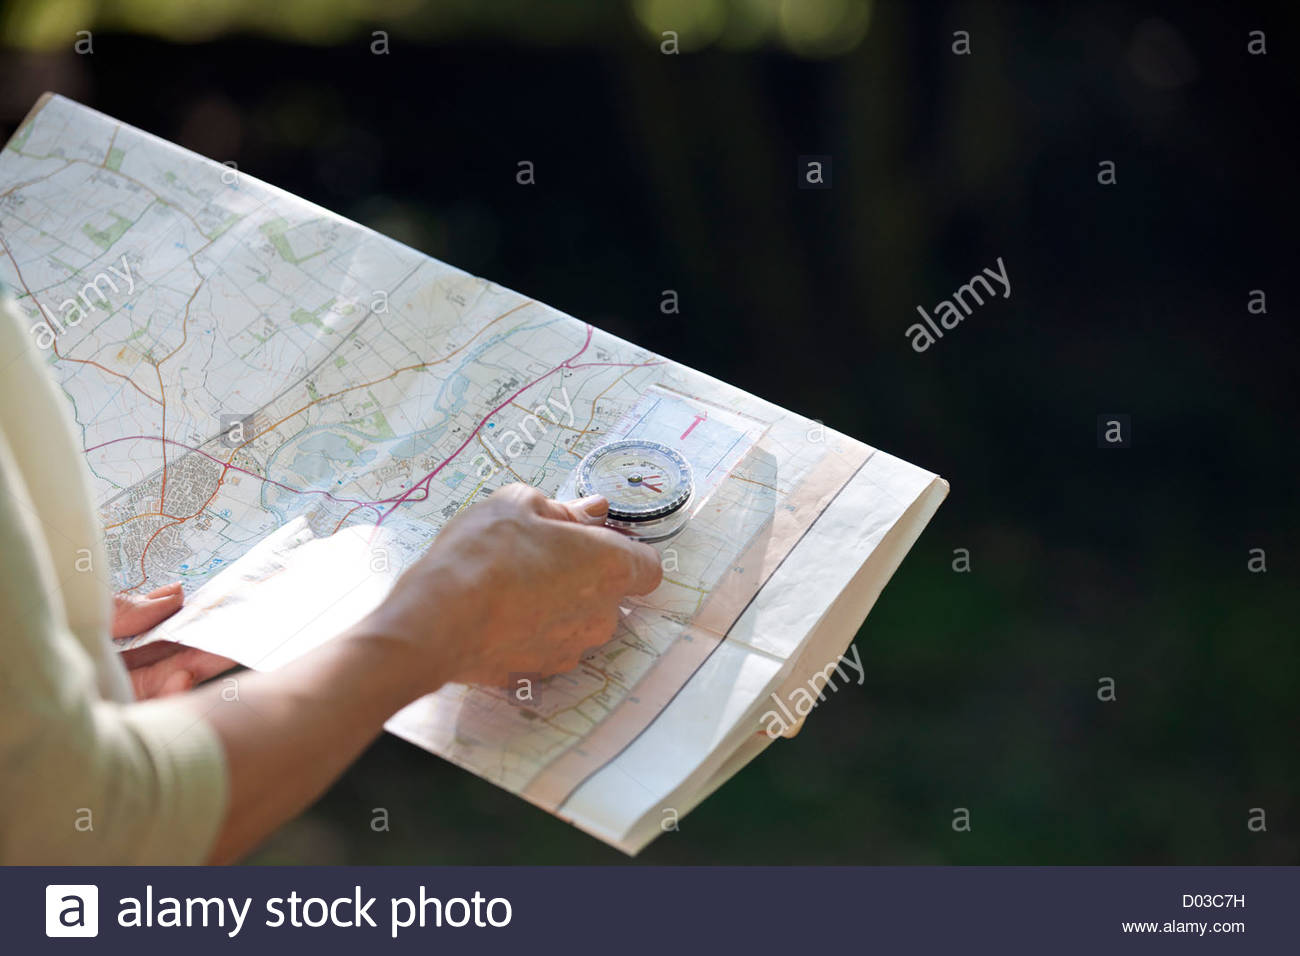 A woman holding a map and compass, close up - Stock Image